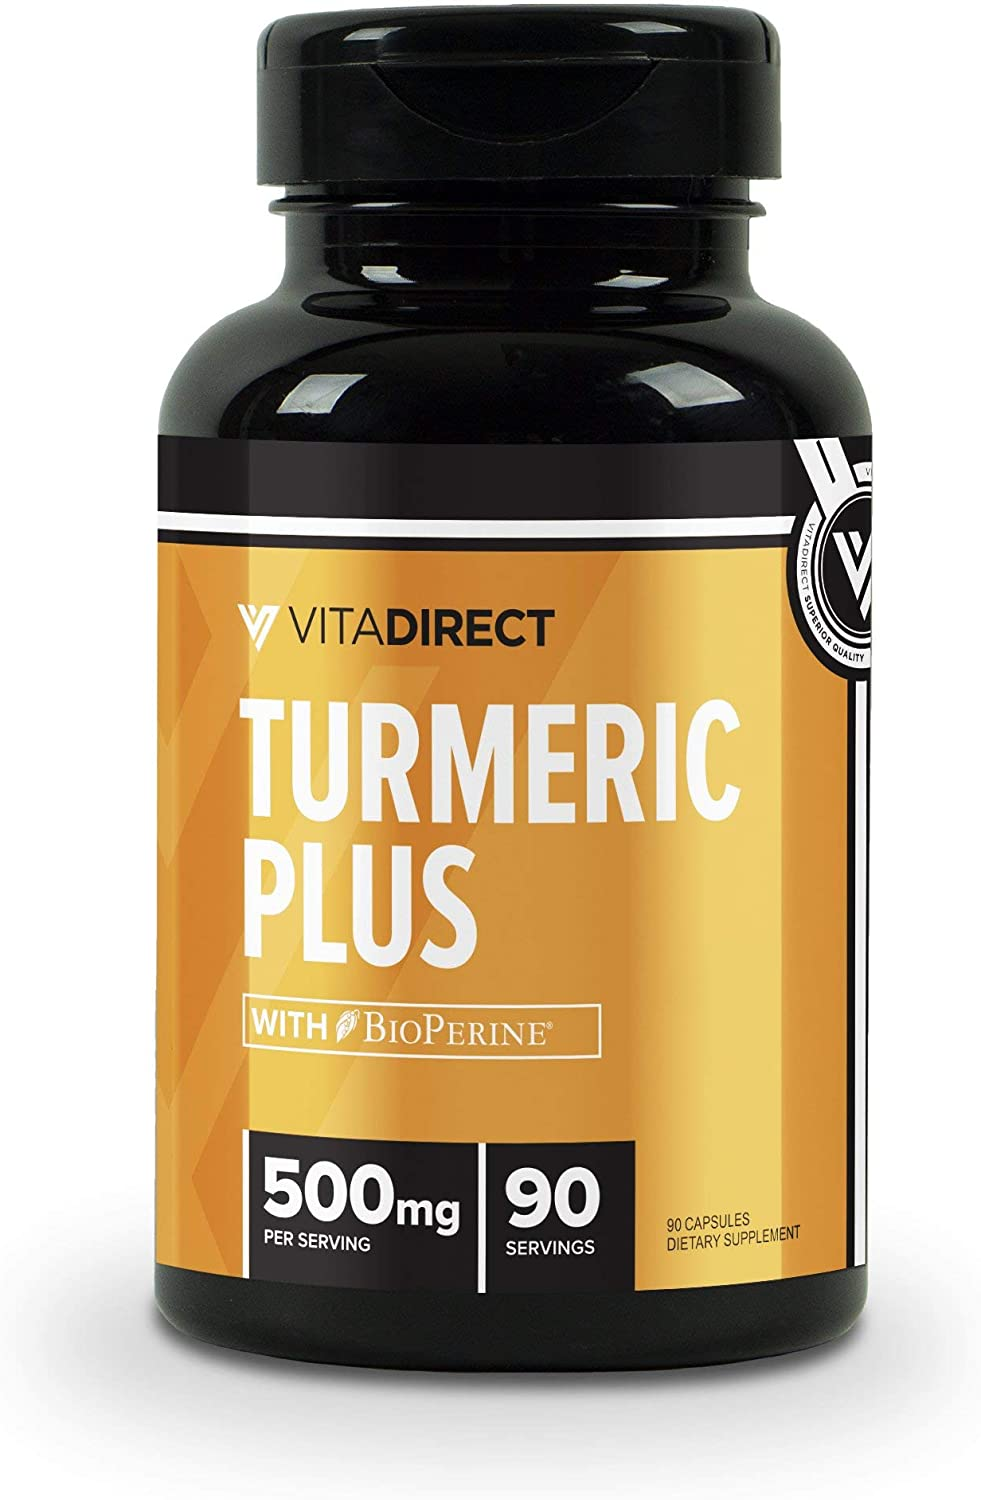 VitaDirect Premium Turmeric Curcumin Plus Supplement with 20mg BioPerine, Black Pepper Extract 500mg, 90 Vegetarian Capsules, 95 Curcuminoids Supplement